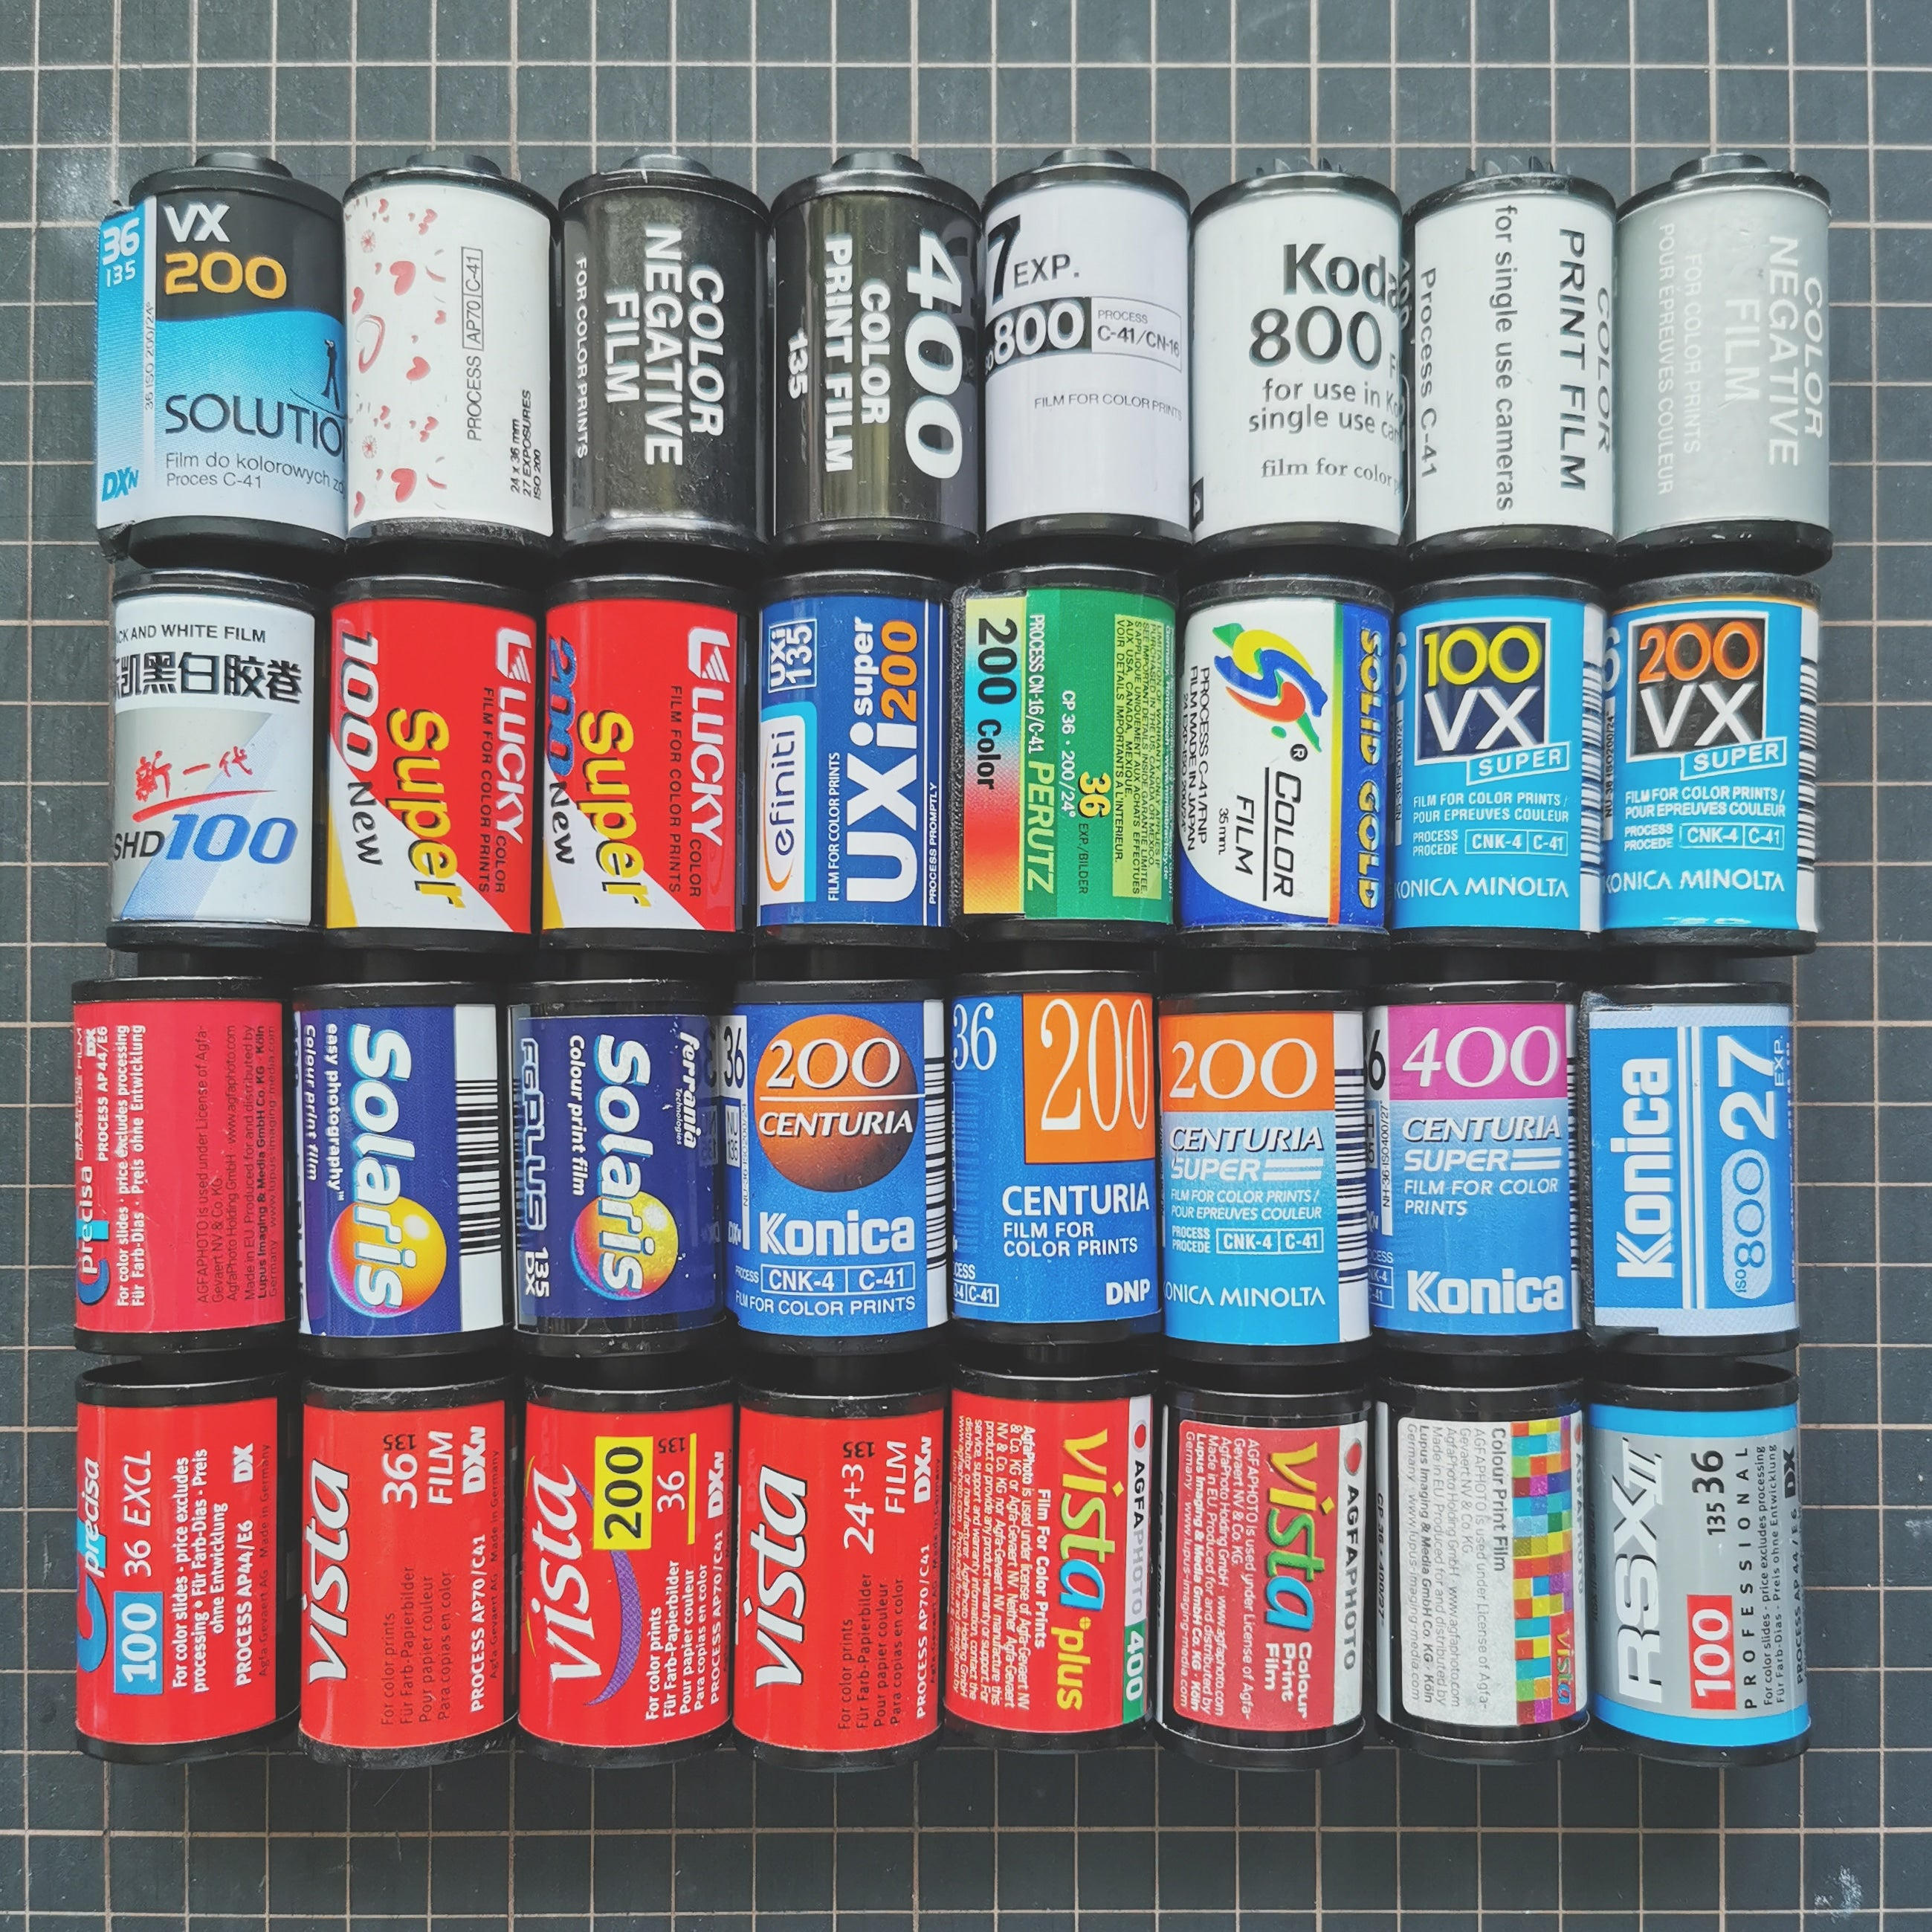 Favourite 35mm Agfa, Konica, etc?